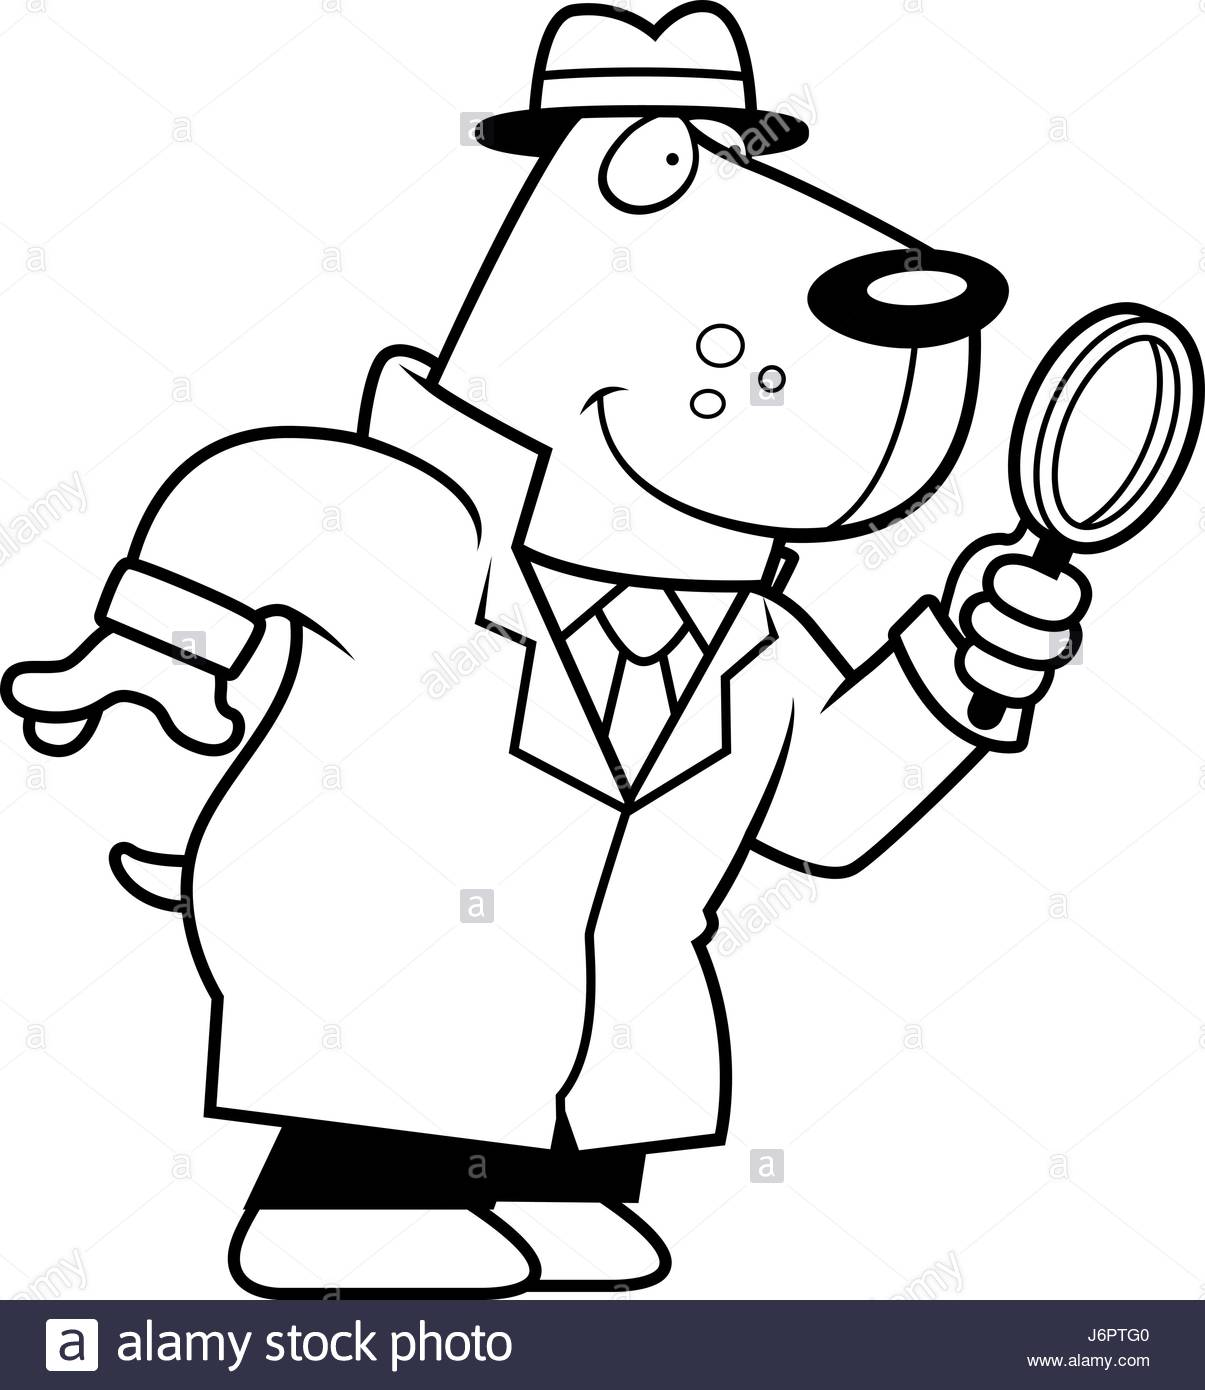 1205x1390 A Cartoon Illustration Of A Dog Detective With A Magnifying Glass